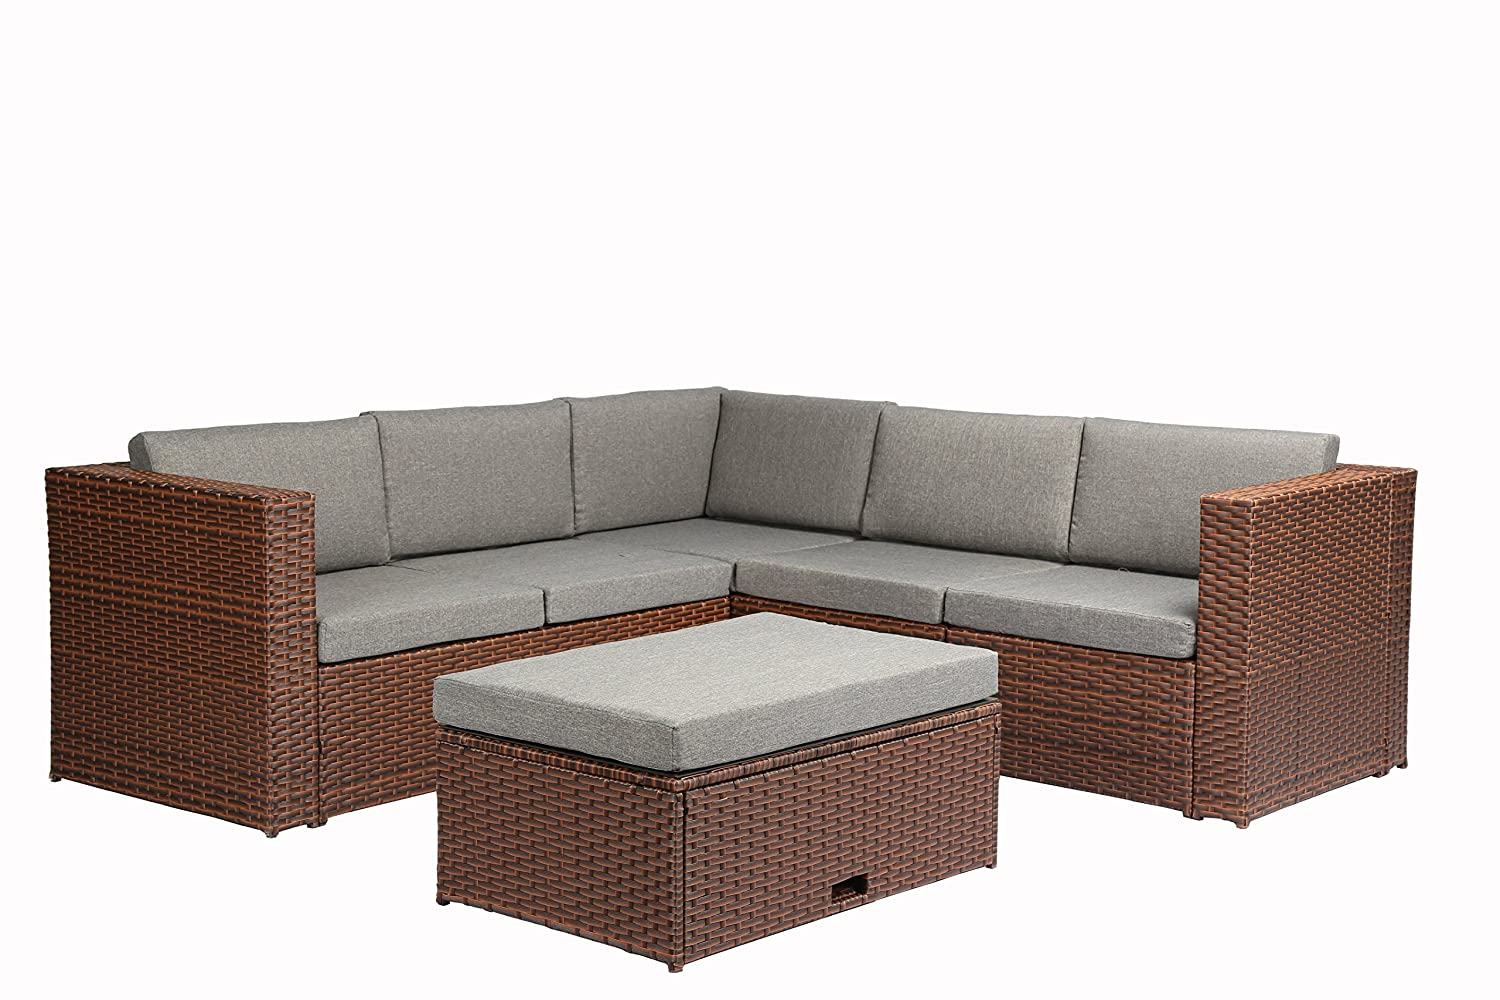 Baner Garden K35 Br 4 Pieces Outdoor Furniture Complete Patio Cushion Wicker